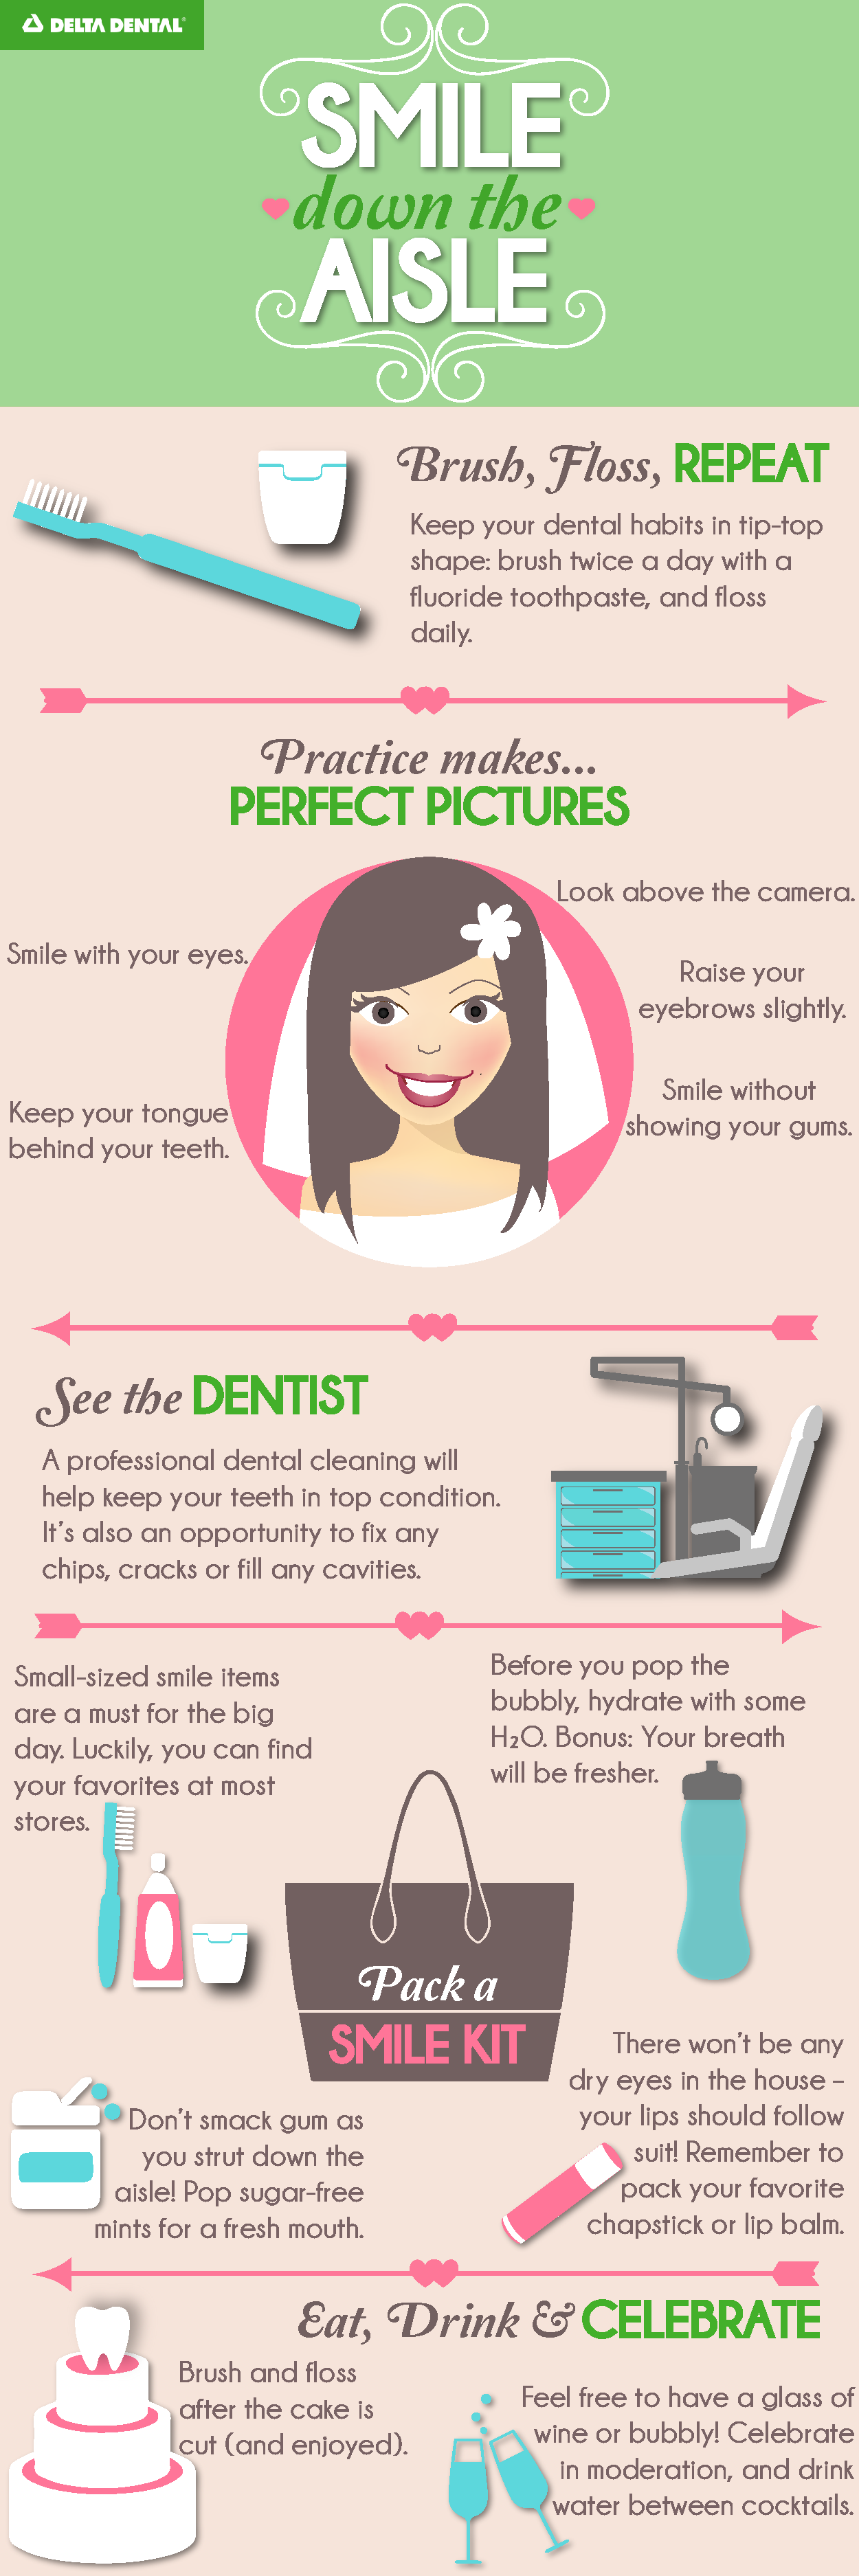 Wedding season is in full swing! Here's how to ensure an aisle-worthy smile: